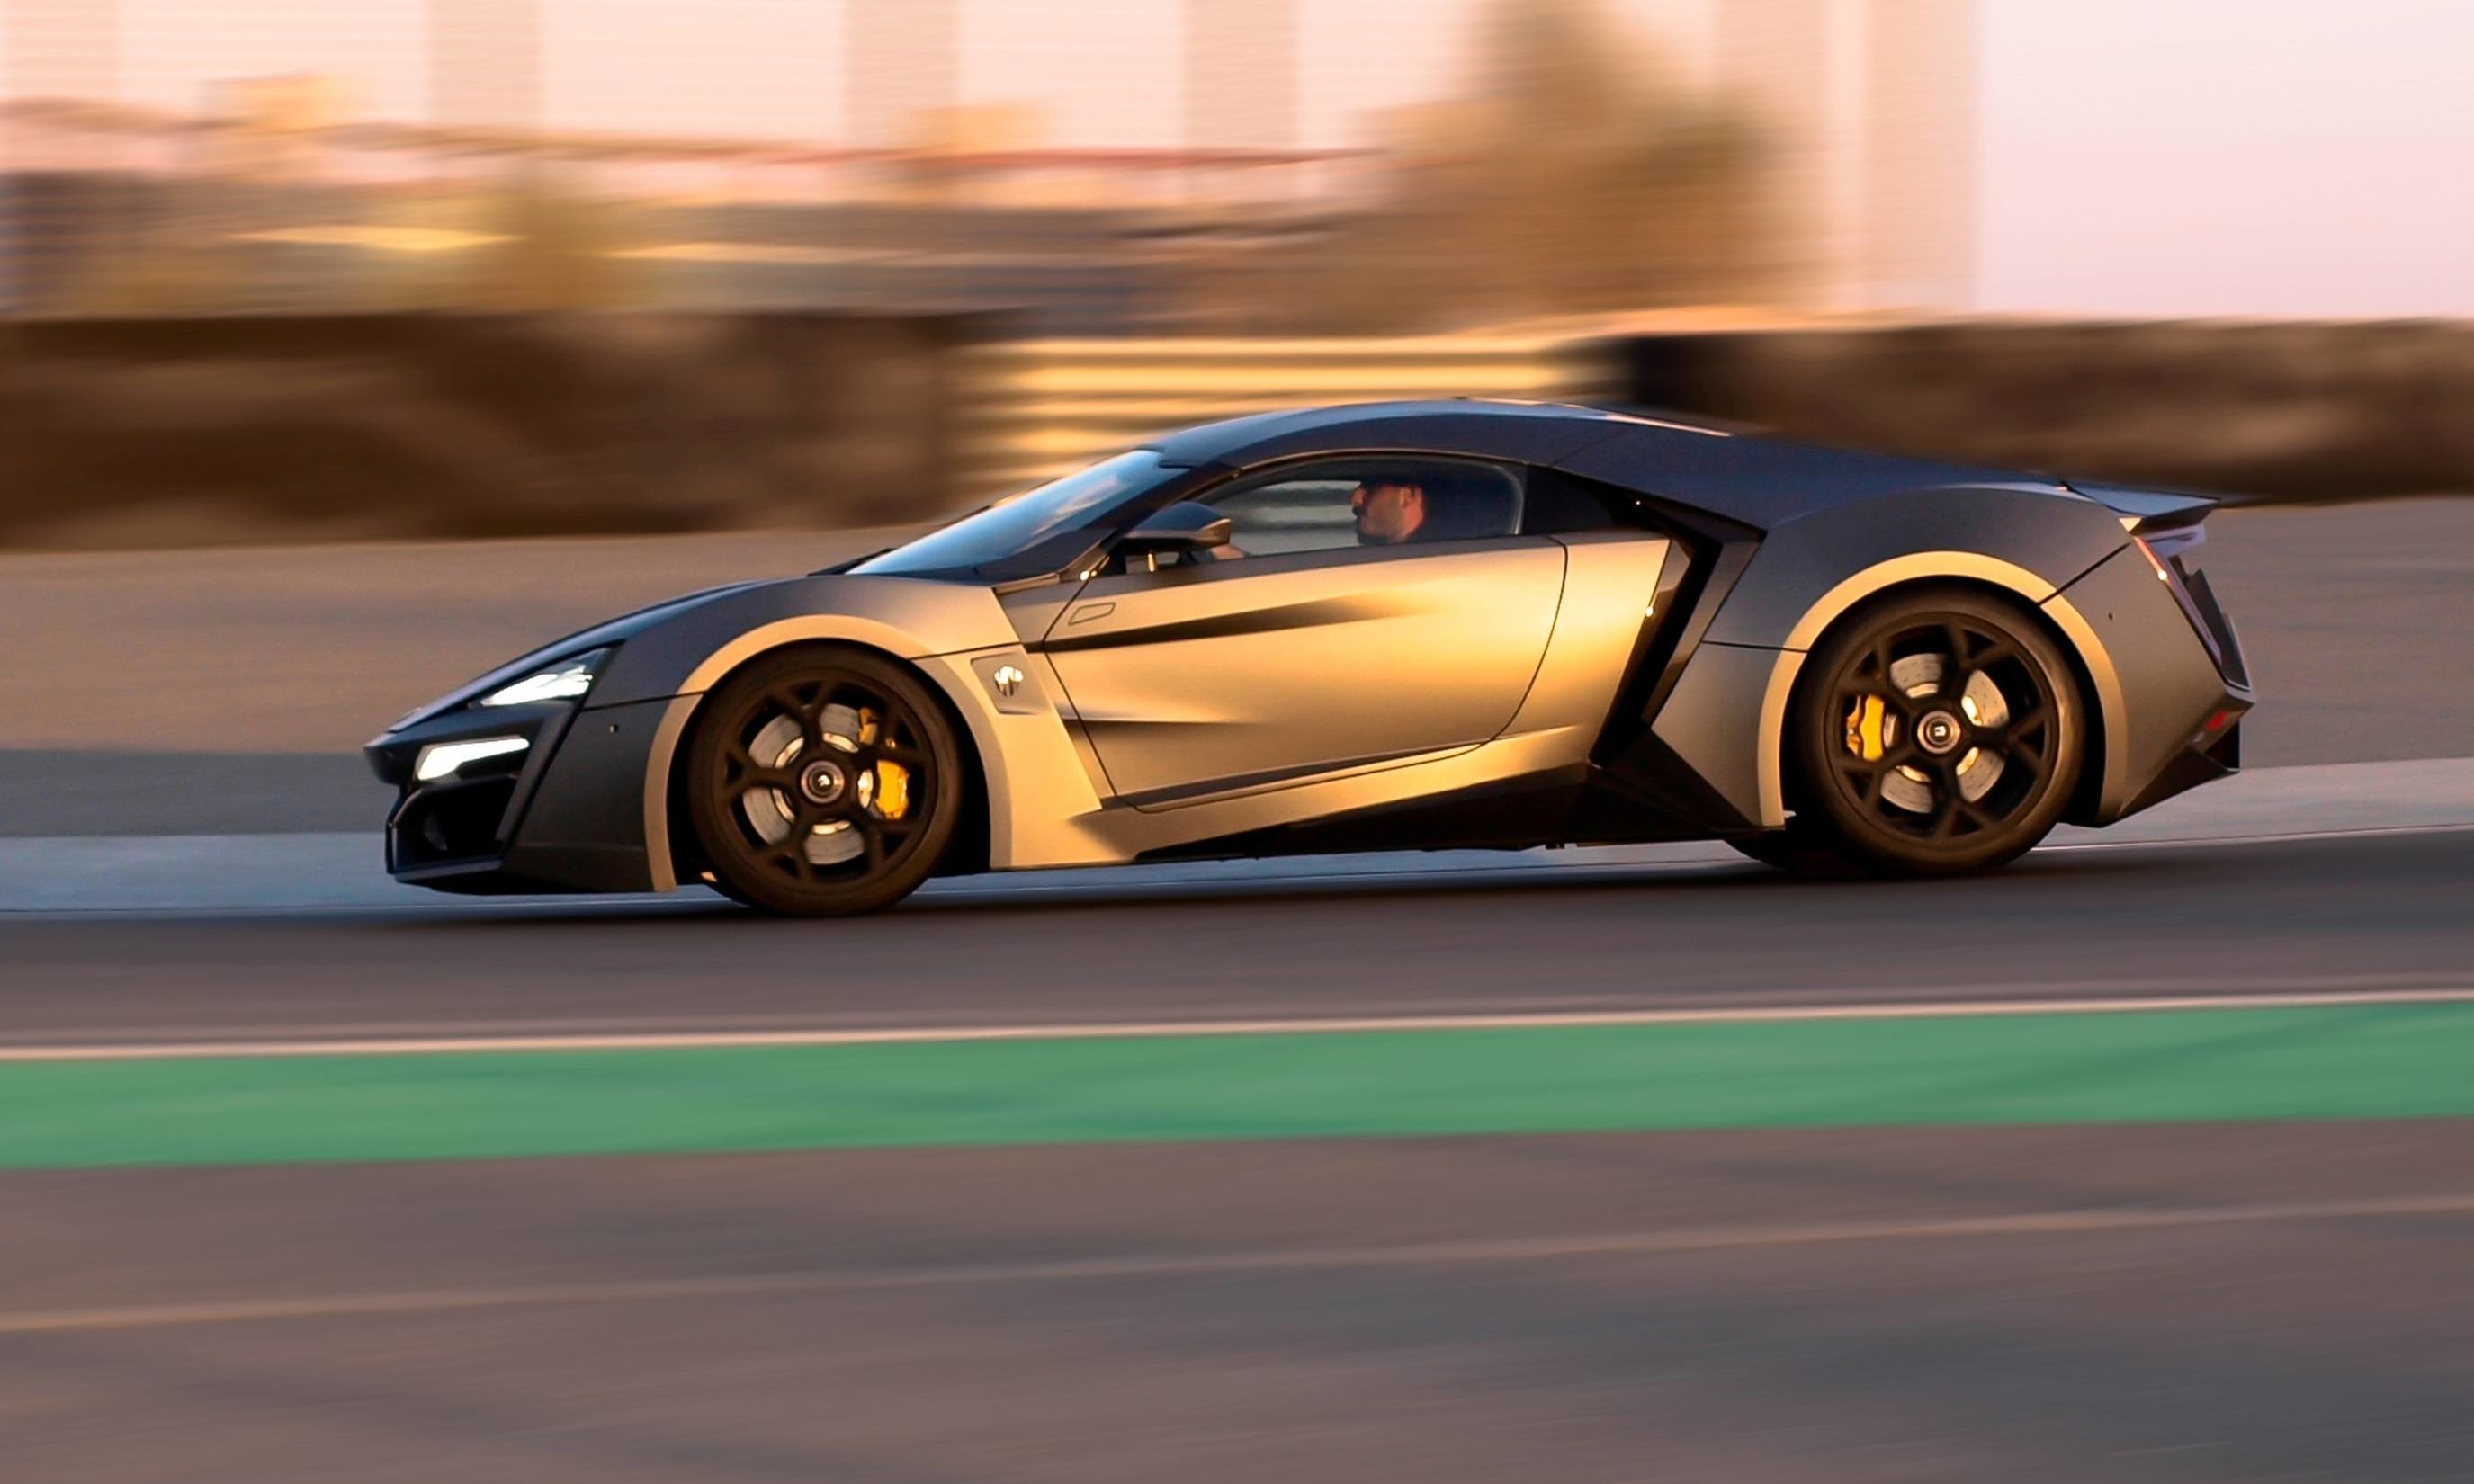 2750x1650 2014 W Motors Lykan Hypersport in 40+ Amazing New Wallpapers, Including  MegaLux Interior 16